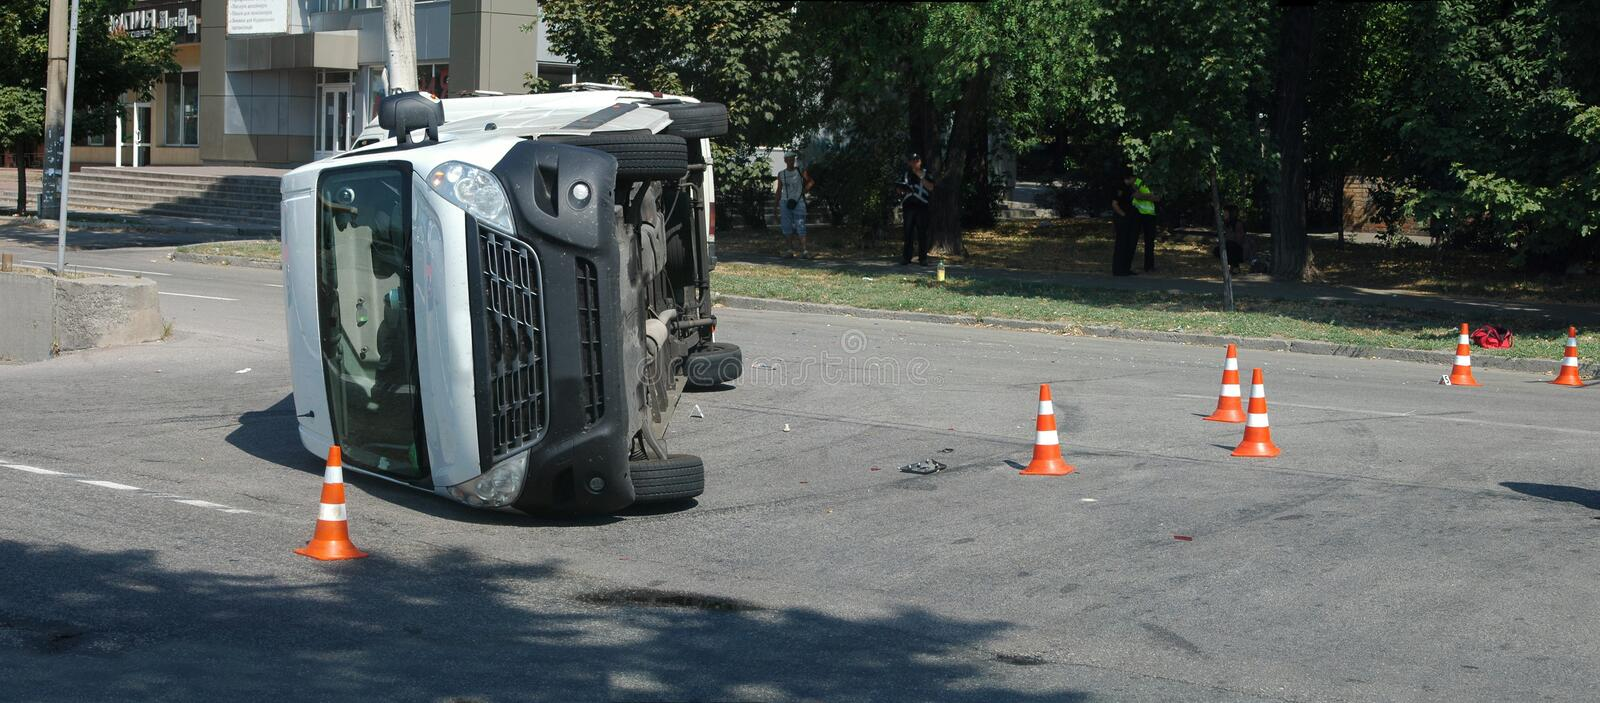 Overturned transport on accident site with traffic cones royalty free stock photo